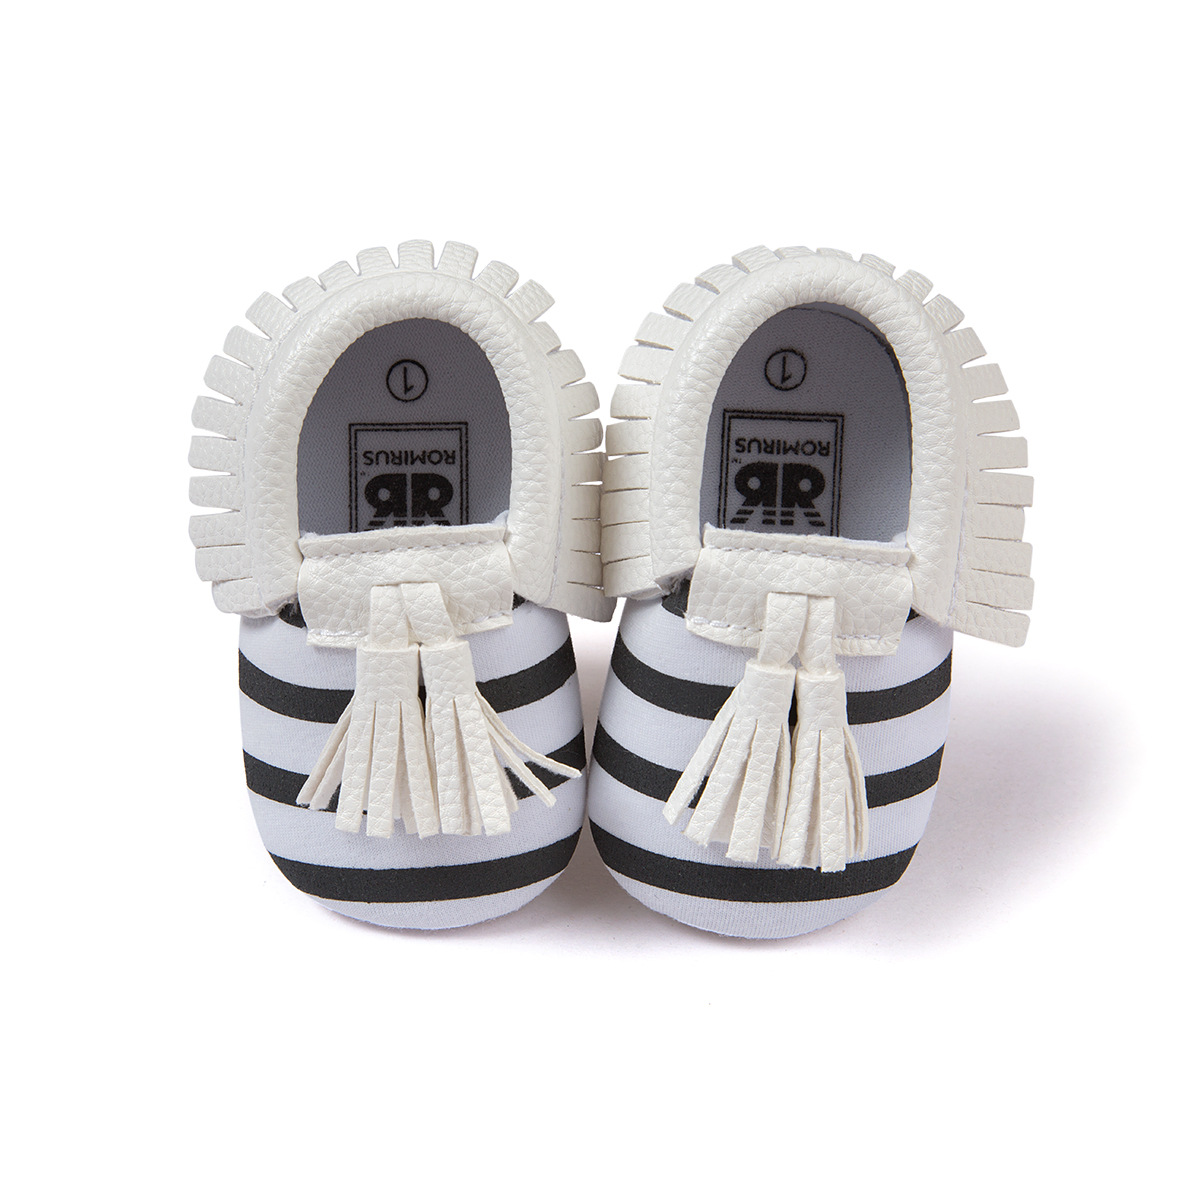 2017 Spring Soft Sole Baby boy girl Moccasins Shoes Fringe PU First Walkers Fashion toddler infant boys Girls bebes chaussures